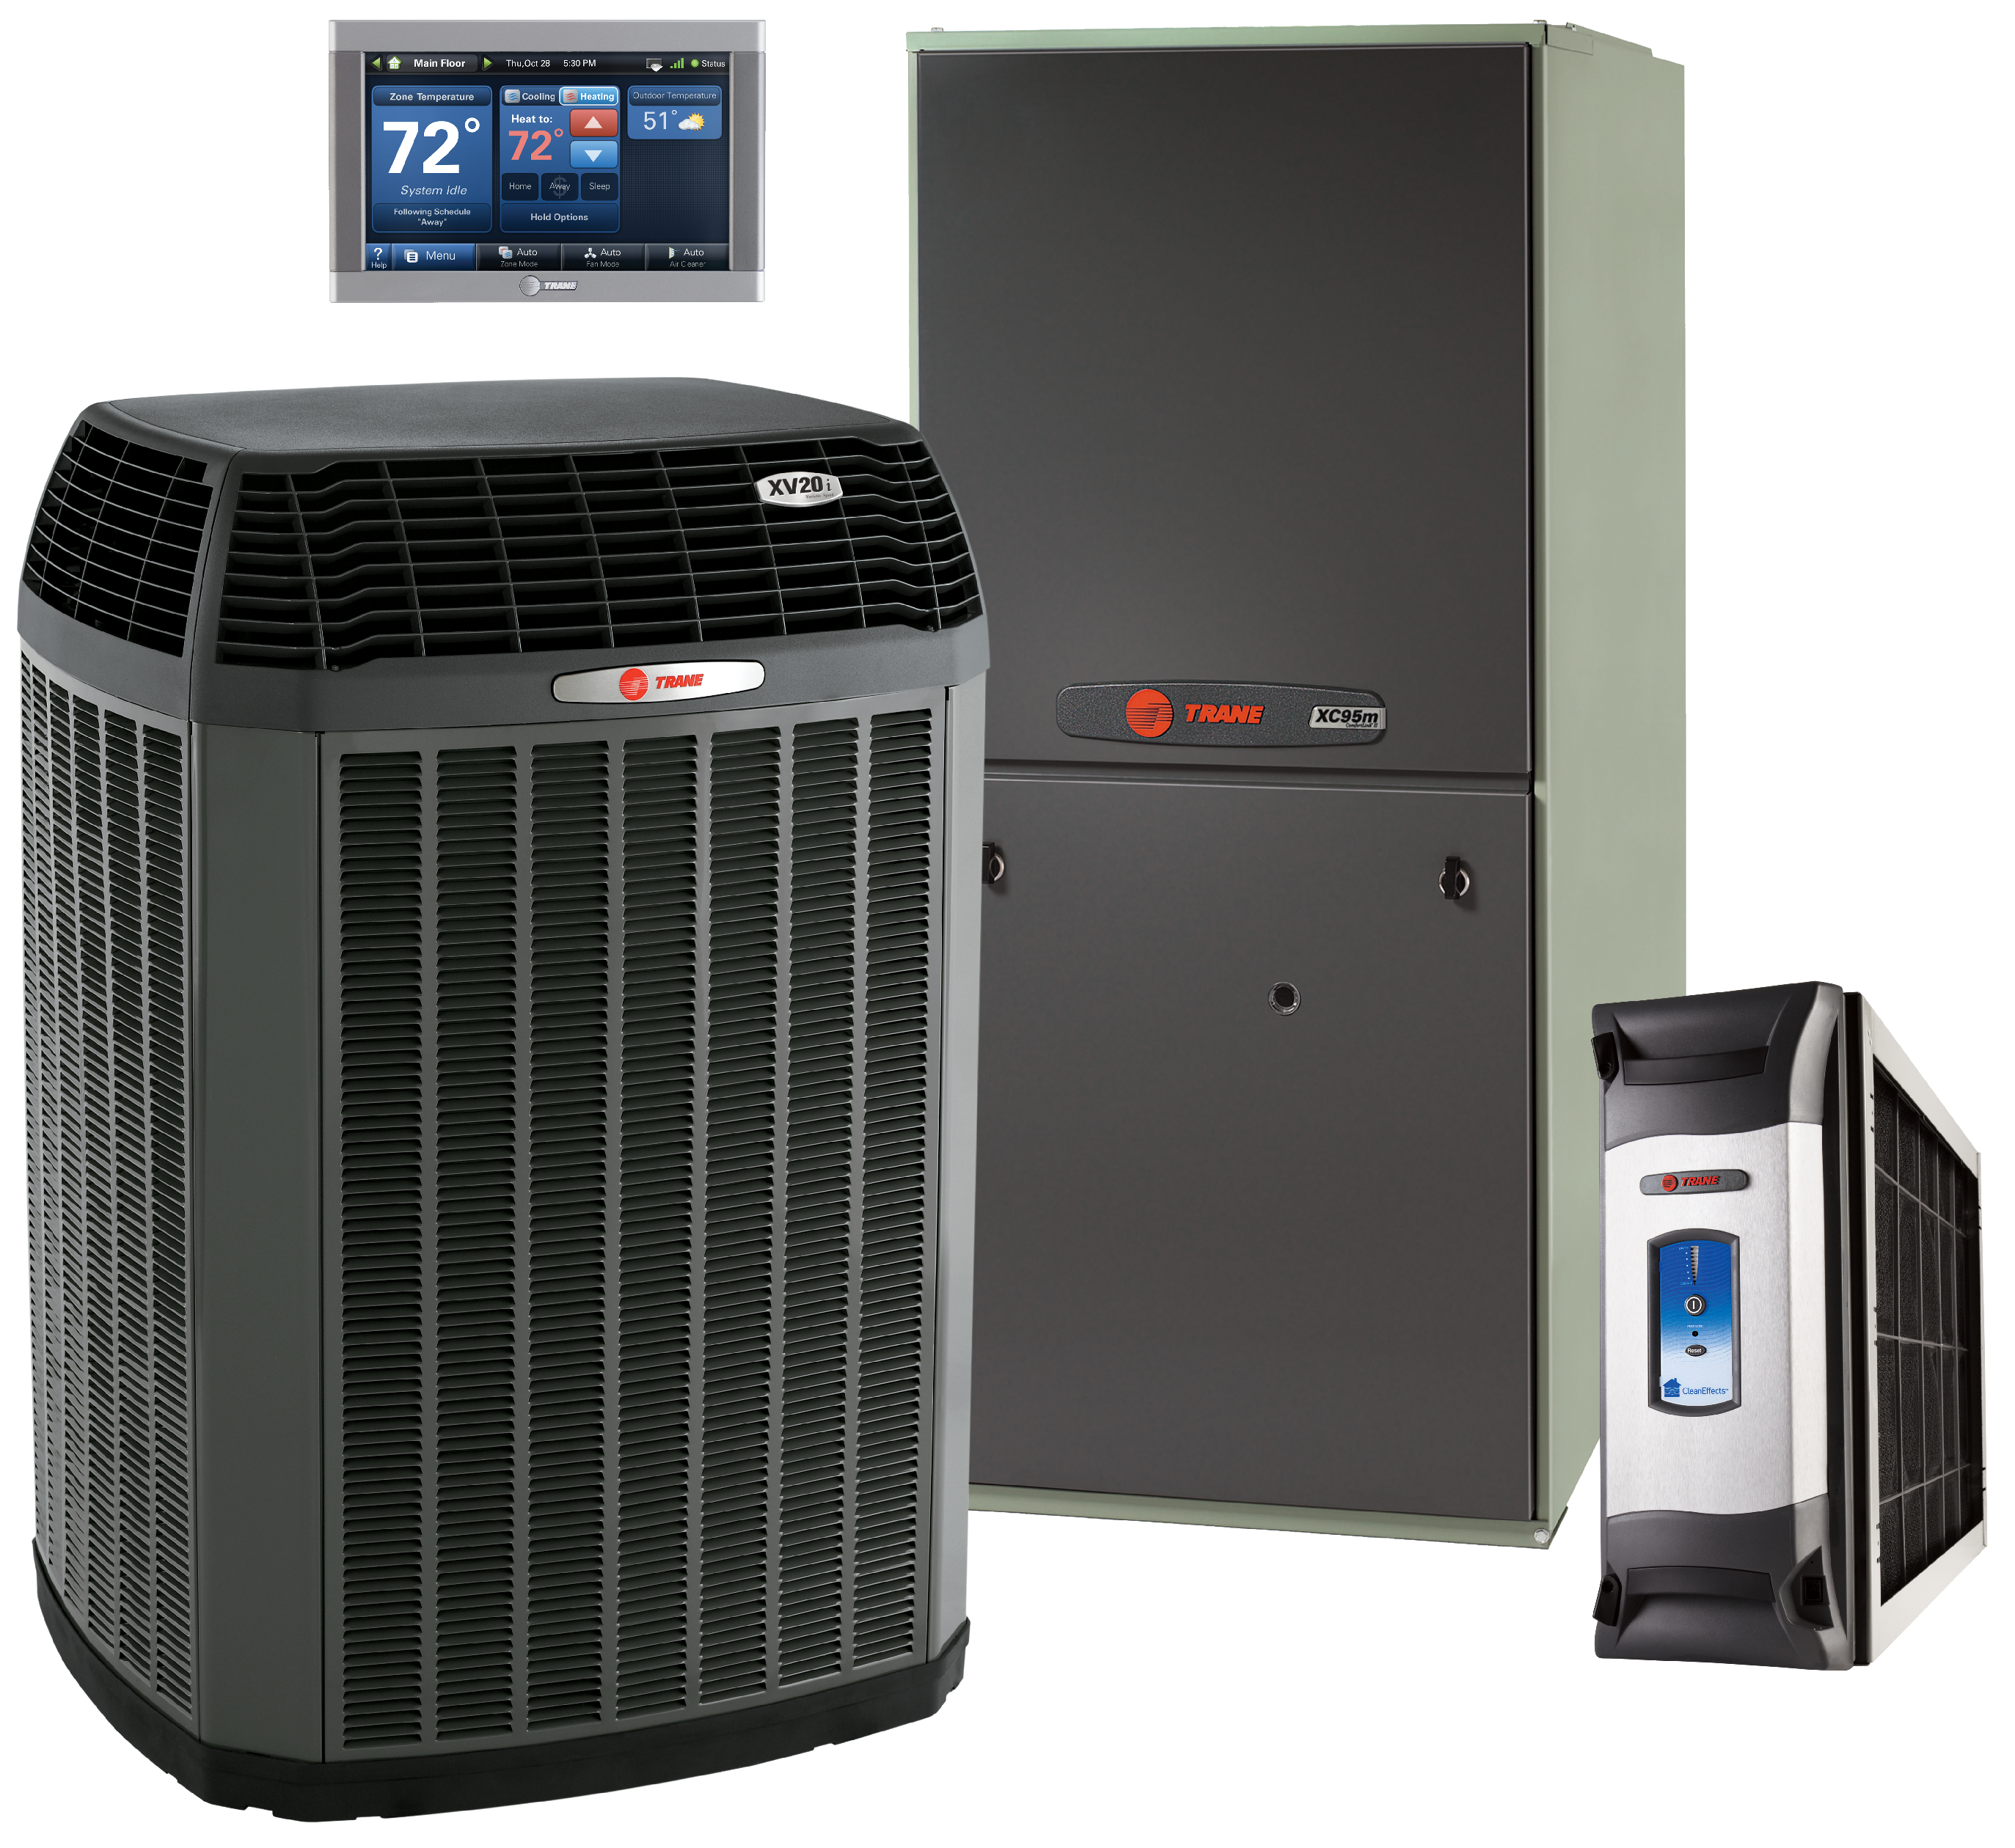 Trane Equipment Heating And Cooling Air Conditioning